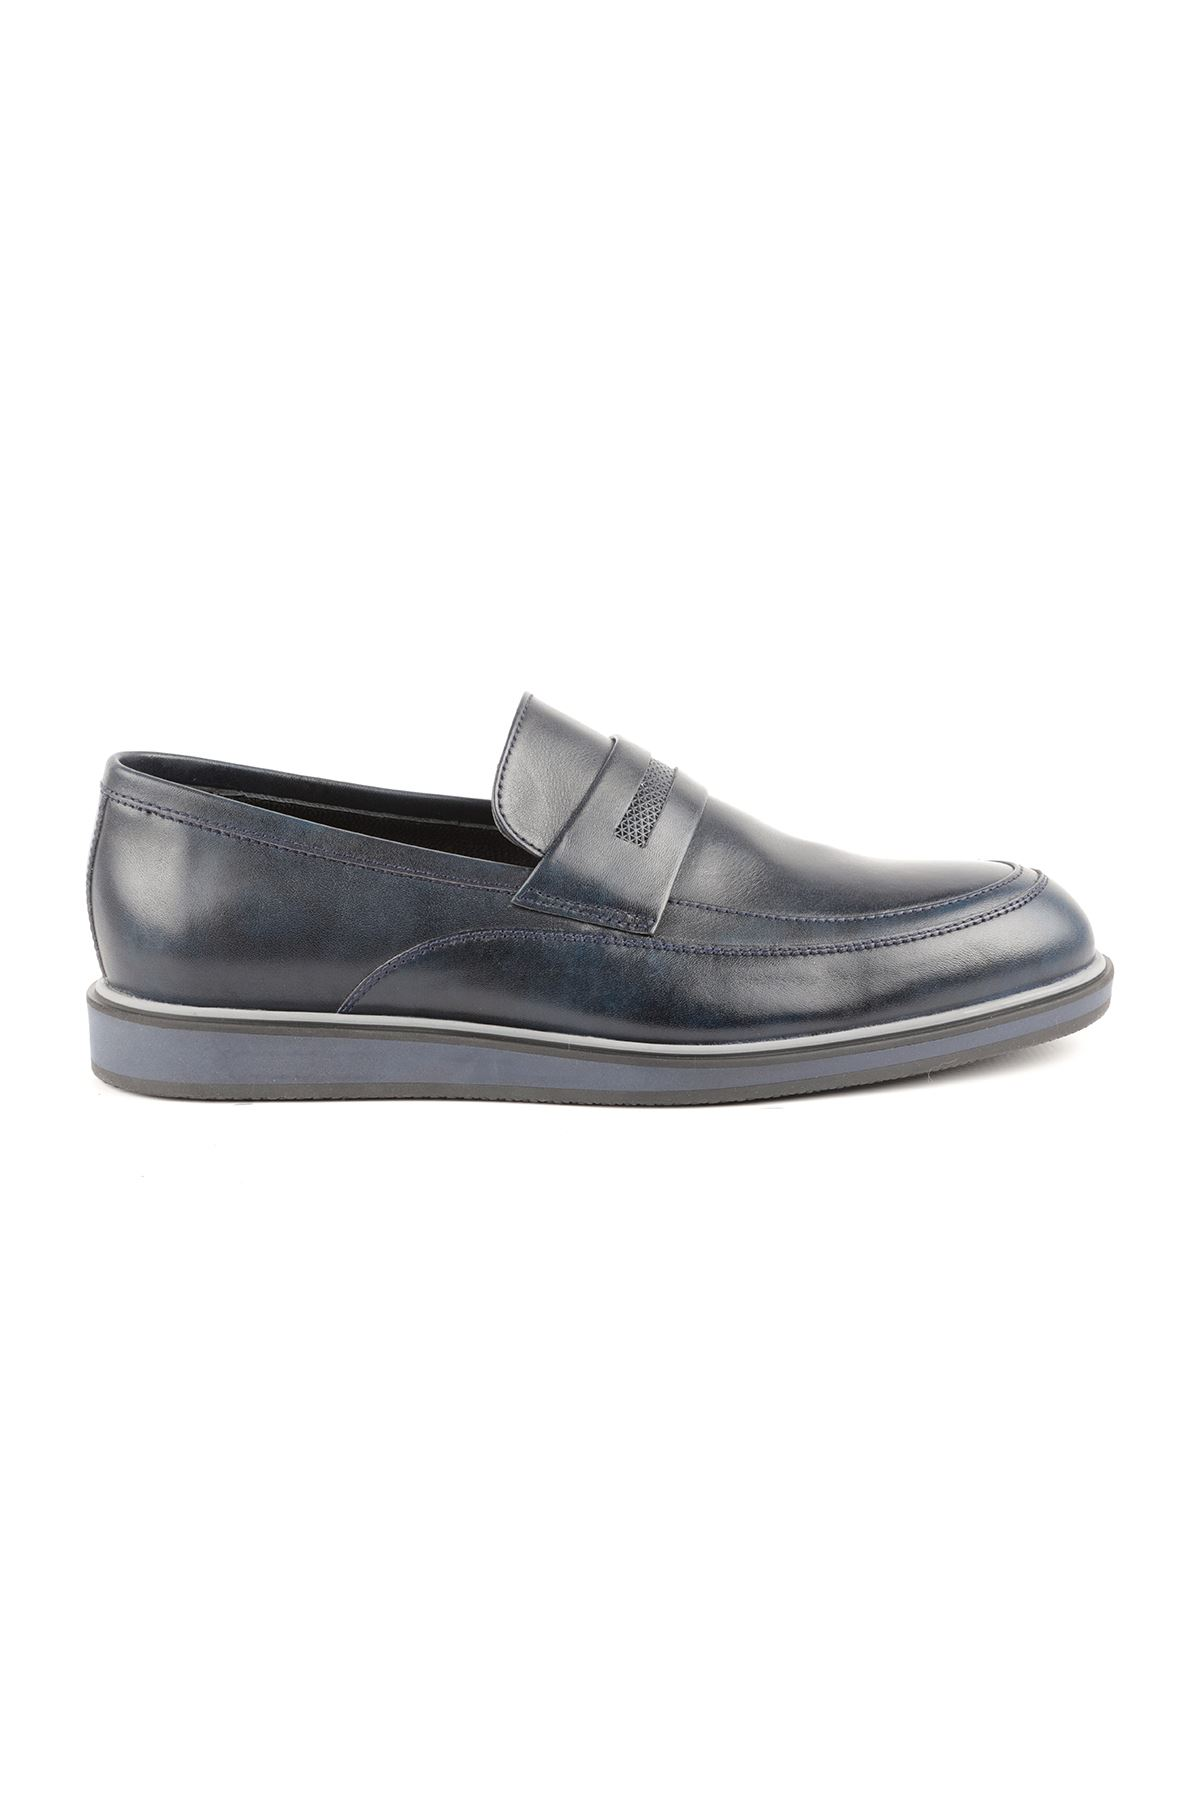 Libero L3668 Navy Blue Loafer Men's Shoes